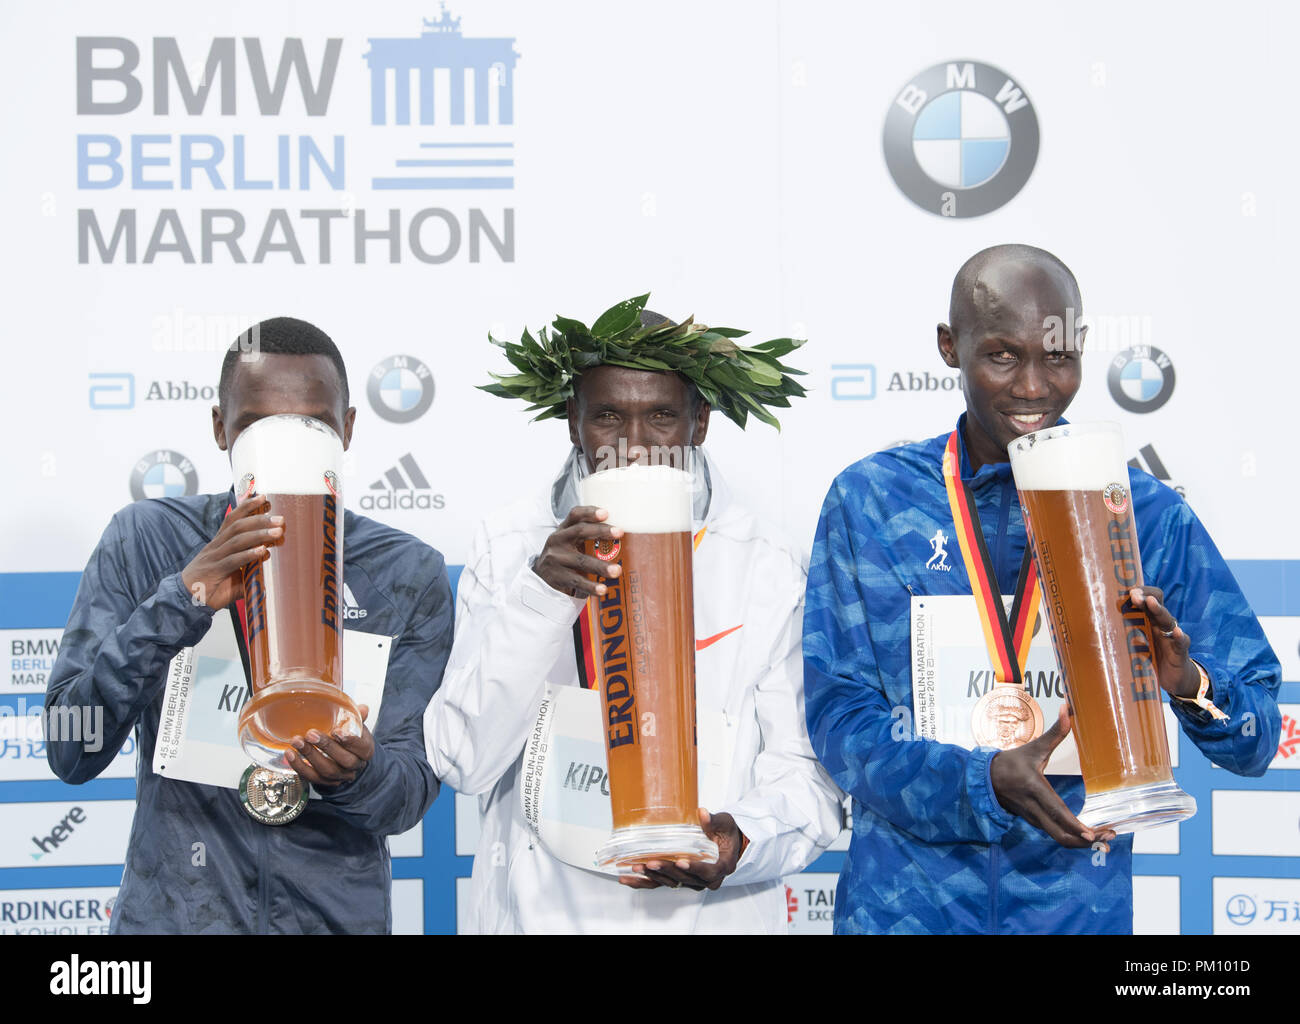 Berlin, Germany. 16 September 2018, Berlin: Kenyan Eliud Kipchoge pleased about his victory in world record time of 2:01:39 during the award ceremony of the 45th BMW Berlin Marathon. Second placed Conseslus Kipruto (L) and bronze medal winner Wilson Kipsang (both Kenyan) stand next to him. Photo: Soeren Stache/dpa Credit: dpa picture alliance/Alamy Live News - Stock Image